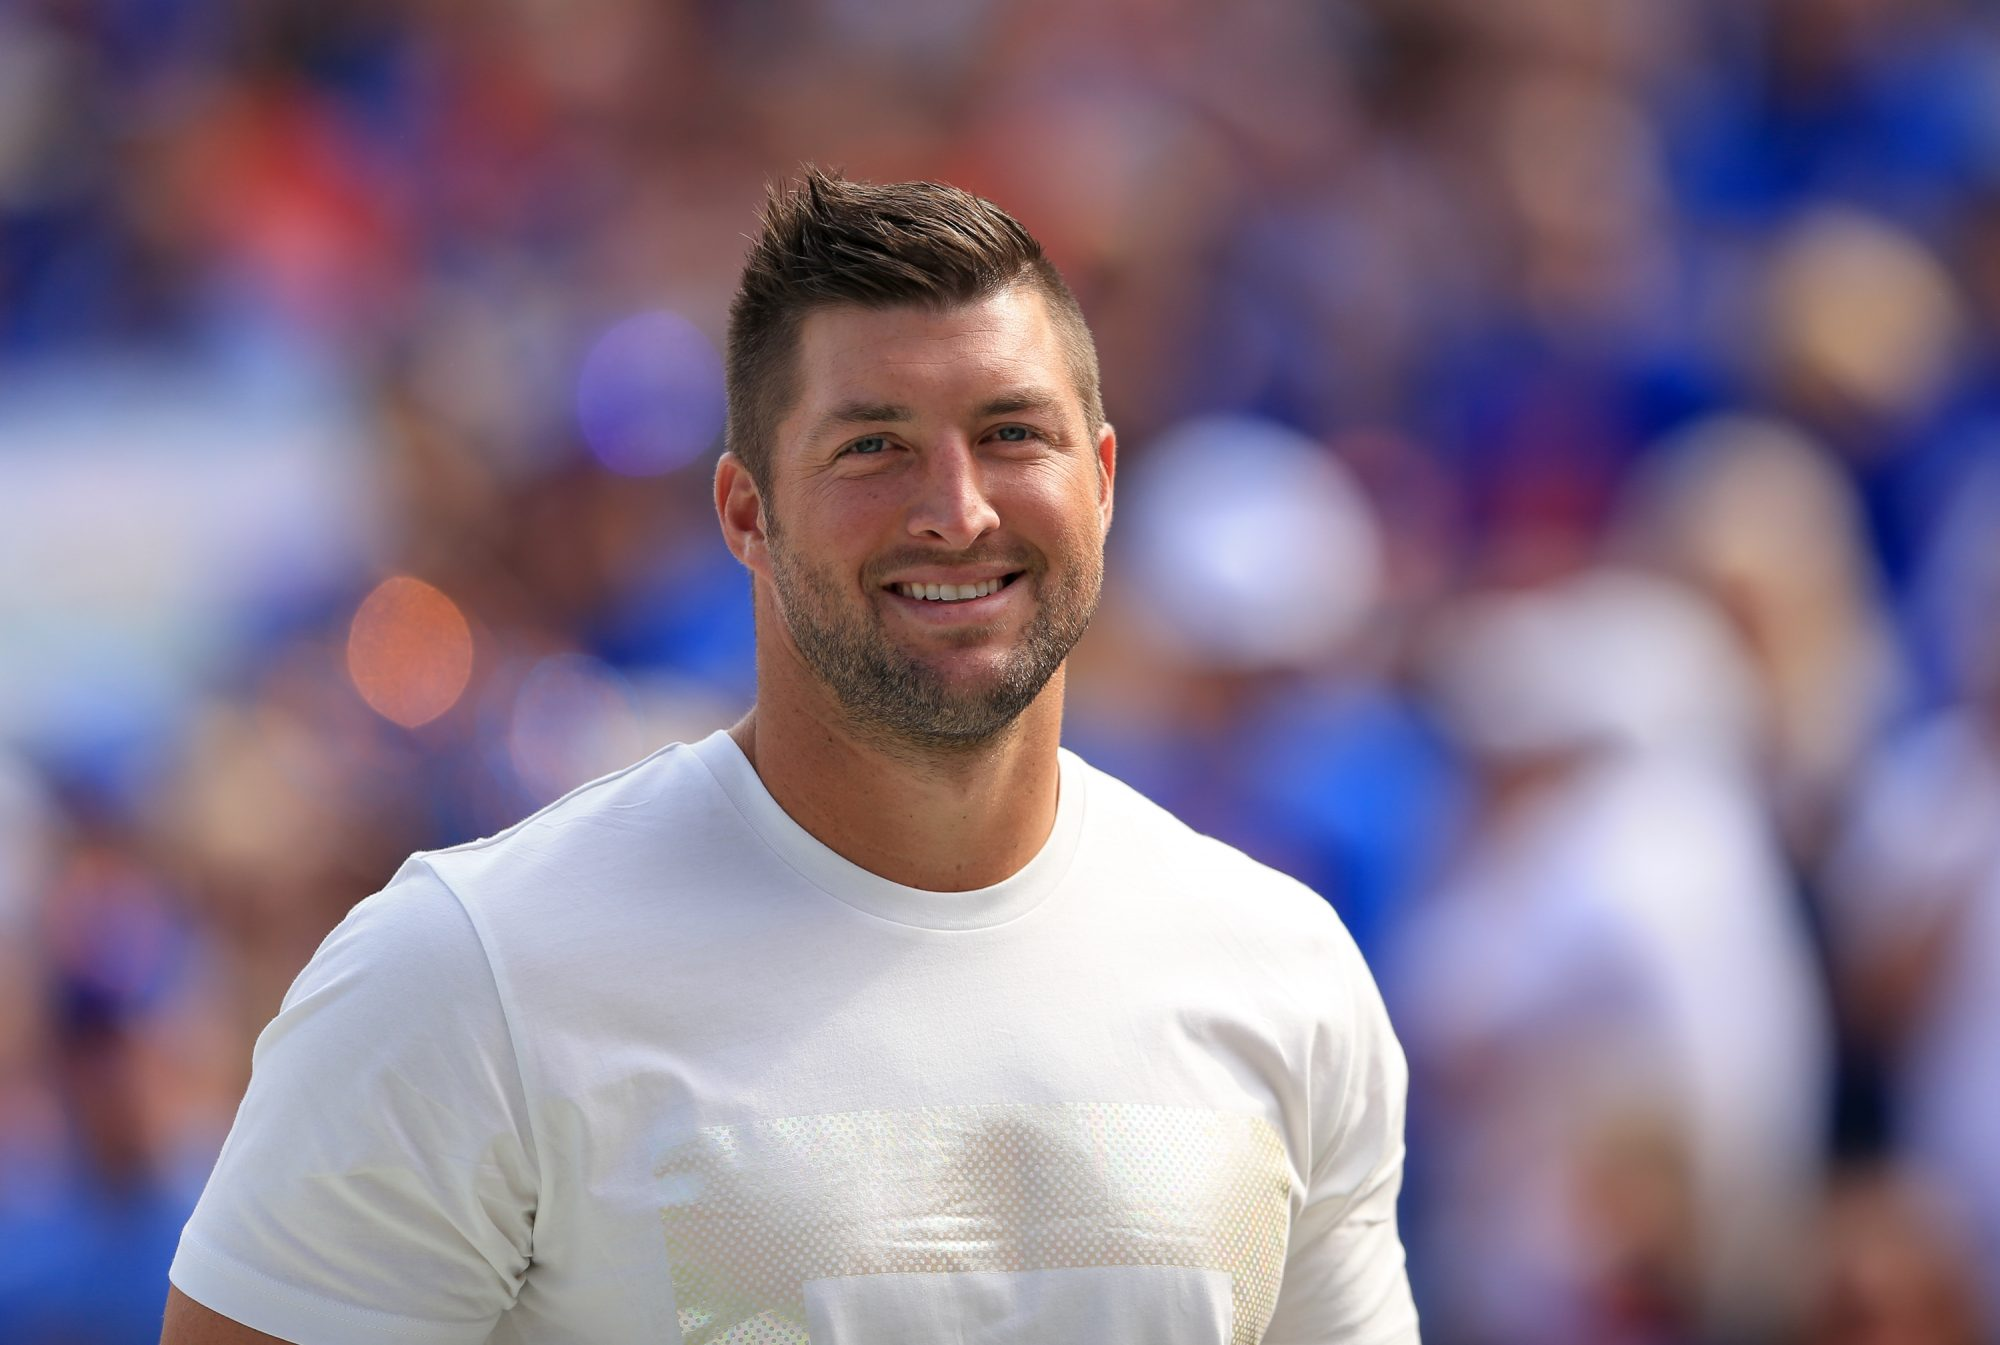 Tim Tebow in Florida